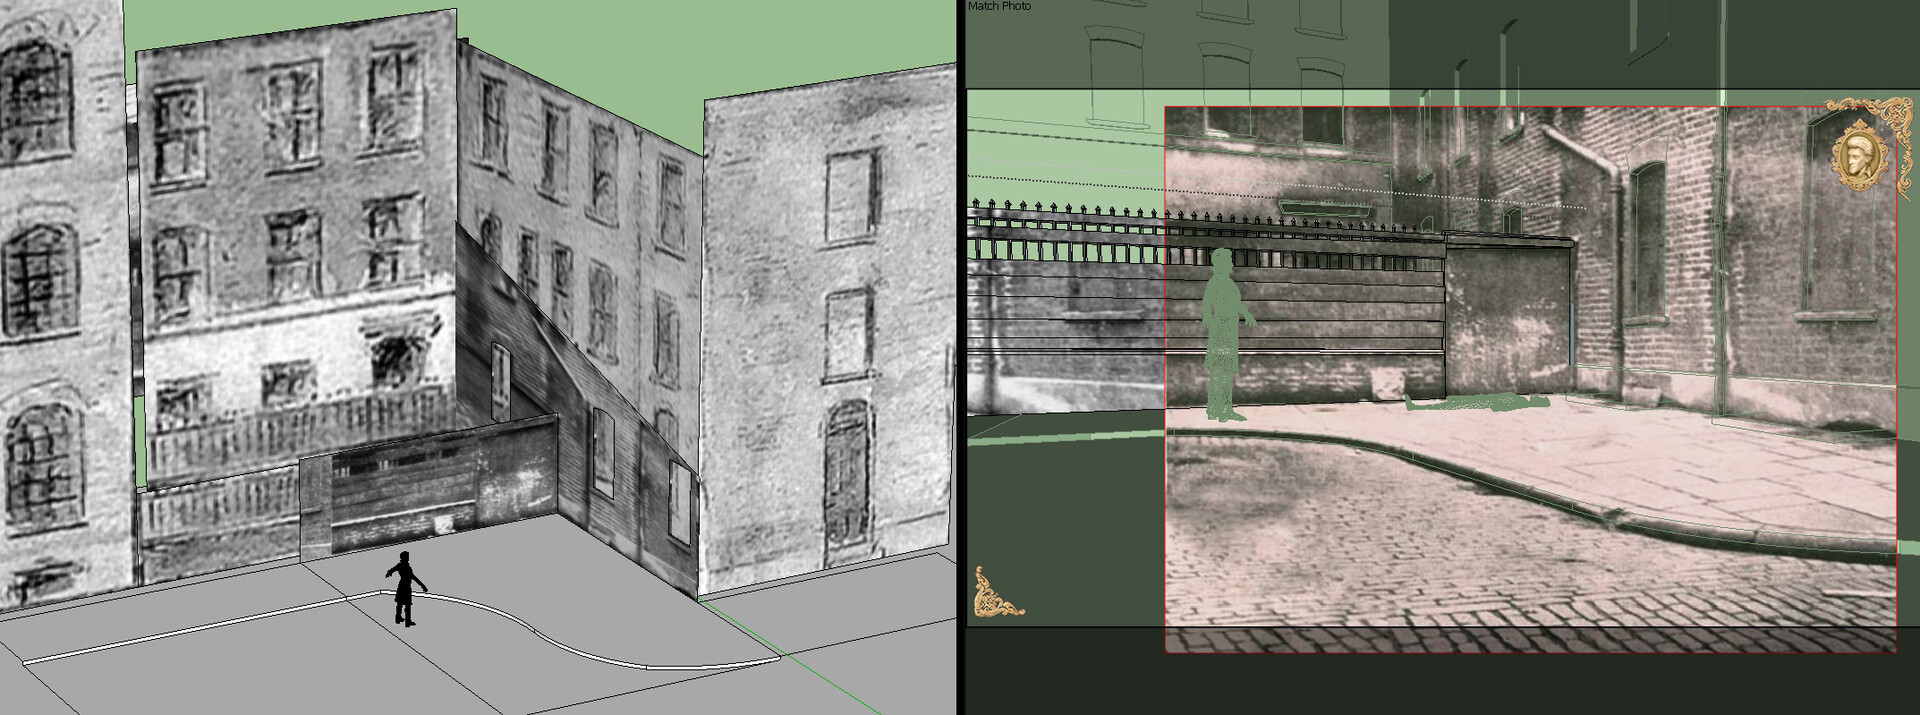 I used the illustration as a starting point and turned it into a 3D scene in Sketchup. I then used the contemporary photo to get the geometric details of the crime scene as accurate as possible to what it looked like at the time.